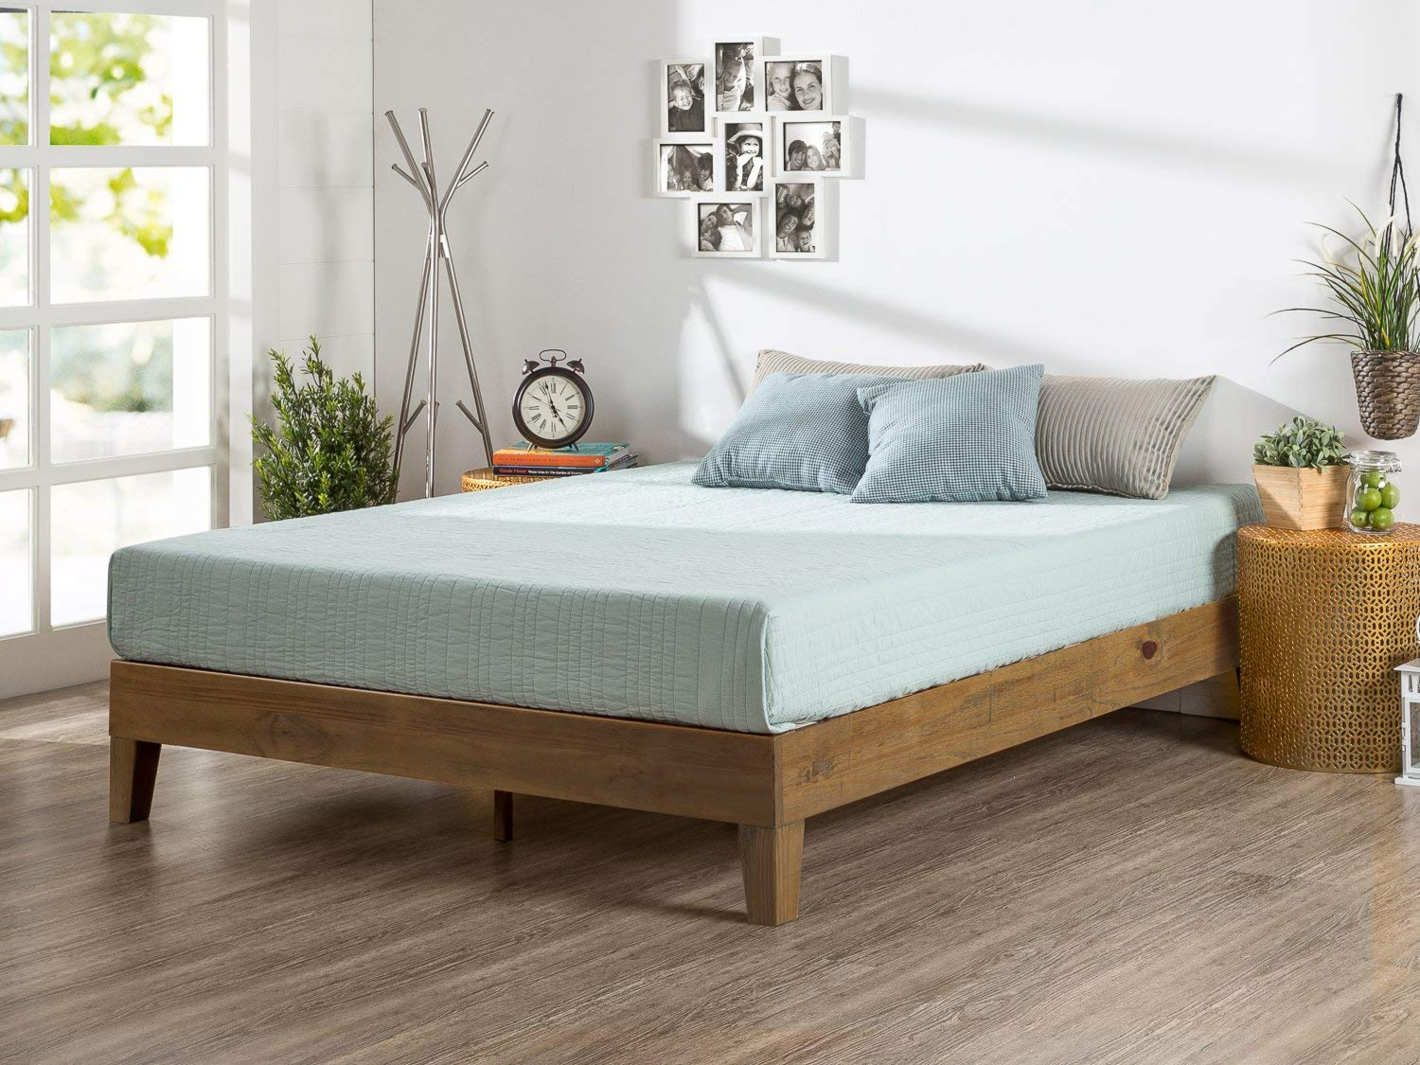 The Best Platform Beds on Amazon, According to